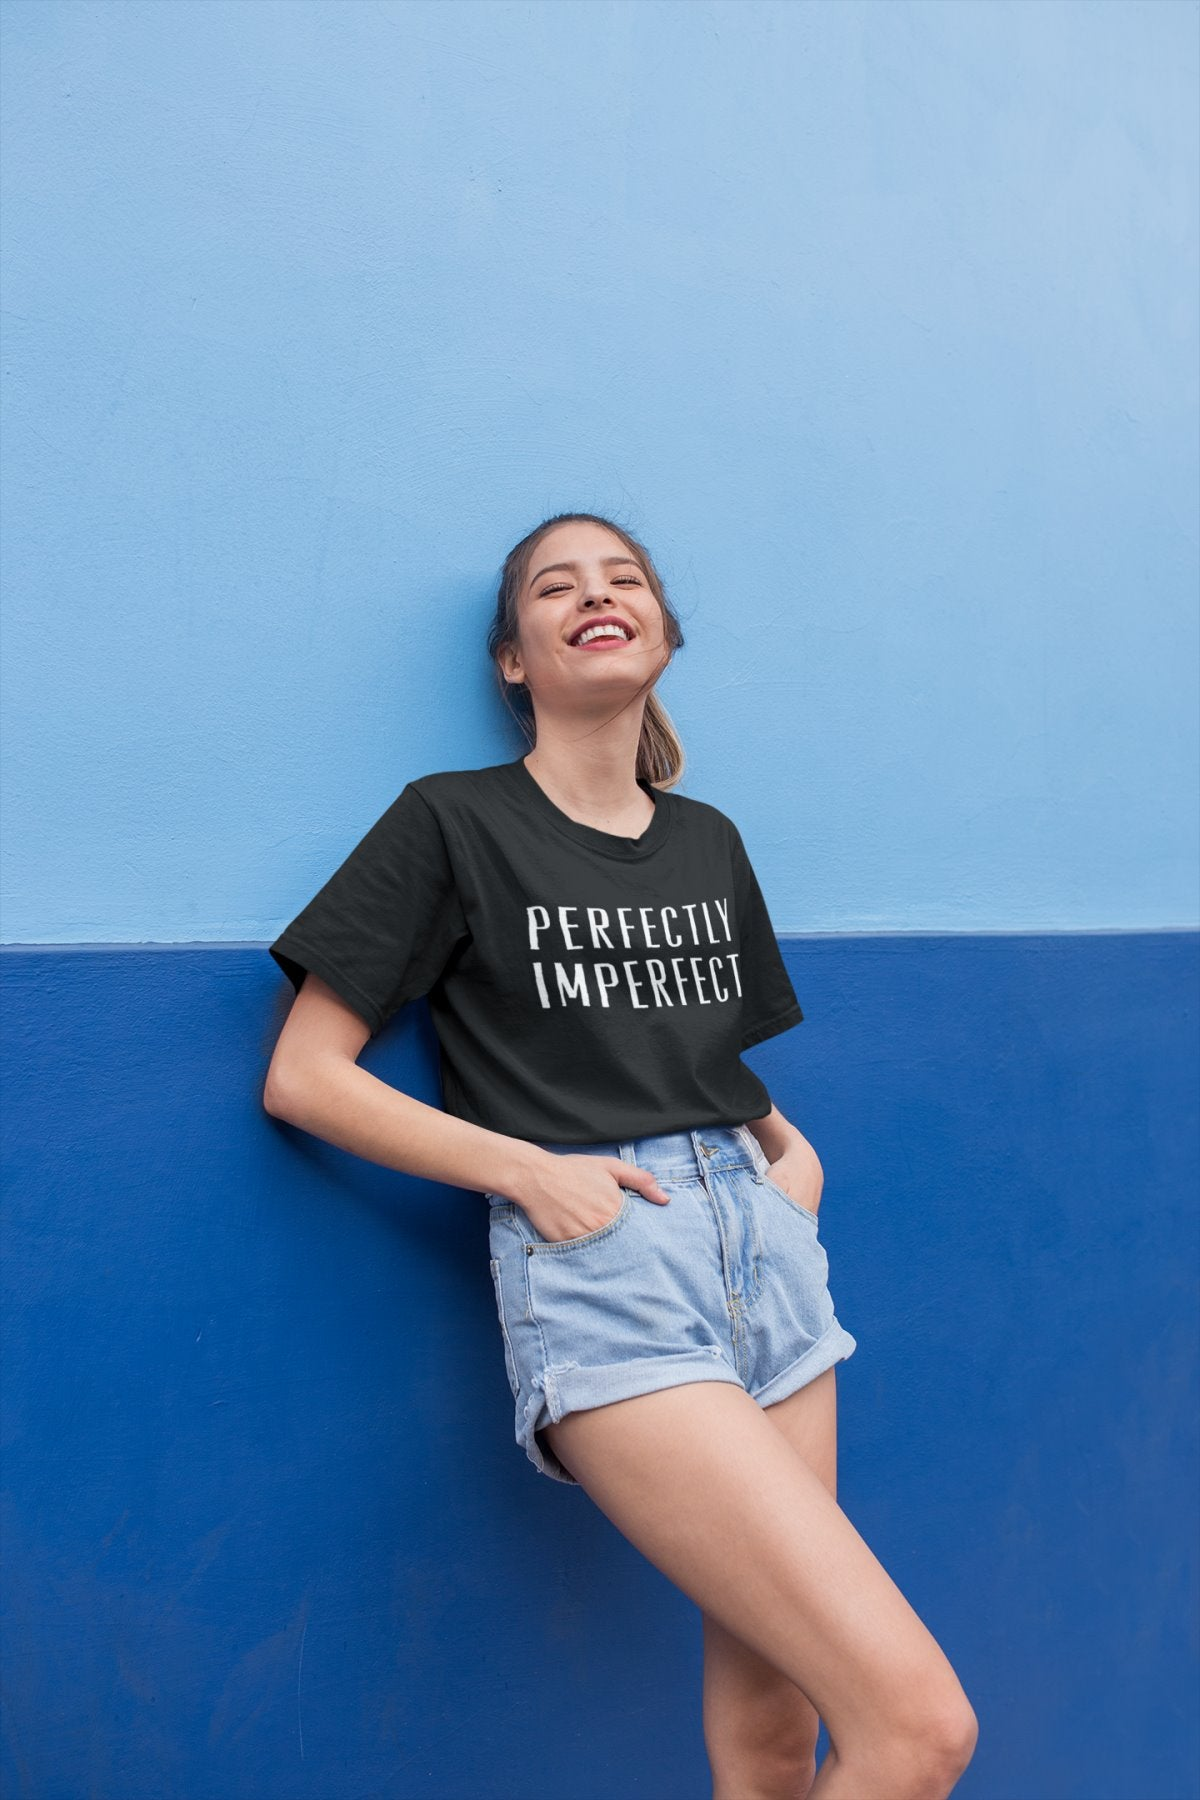 Perfectly Imperfect - Unisex Shirt